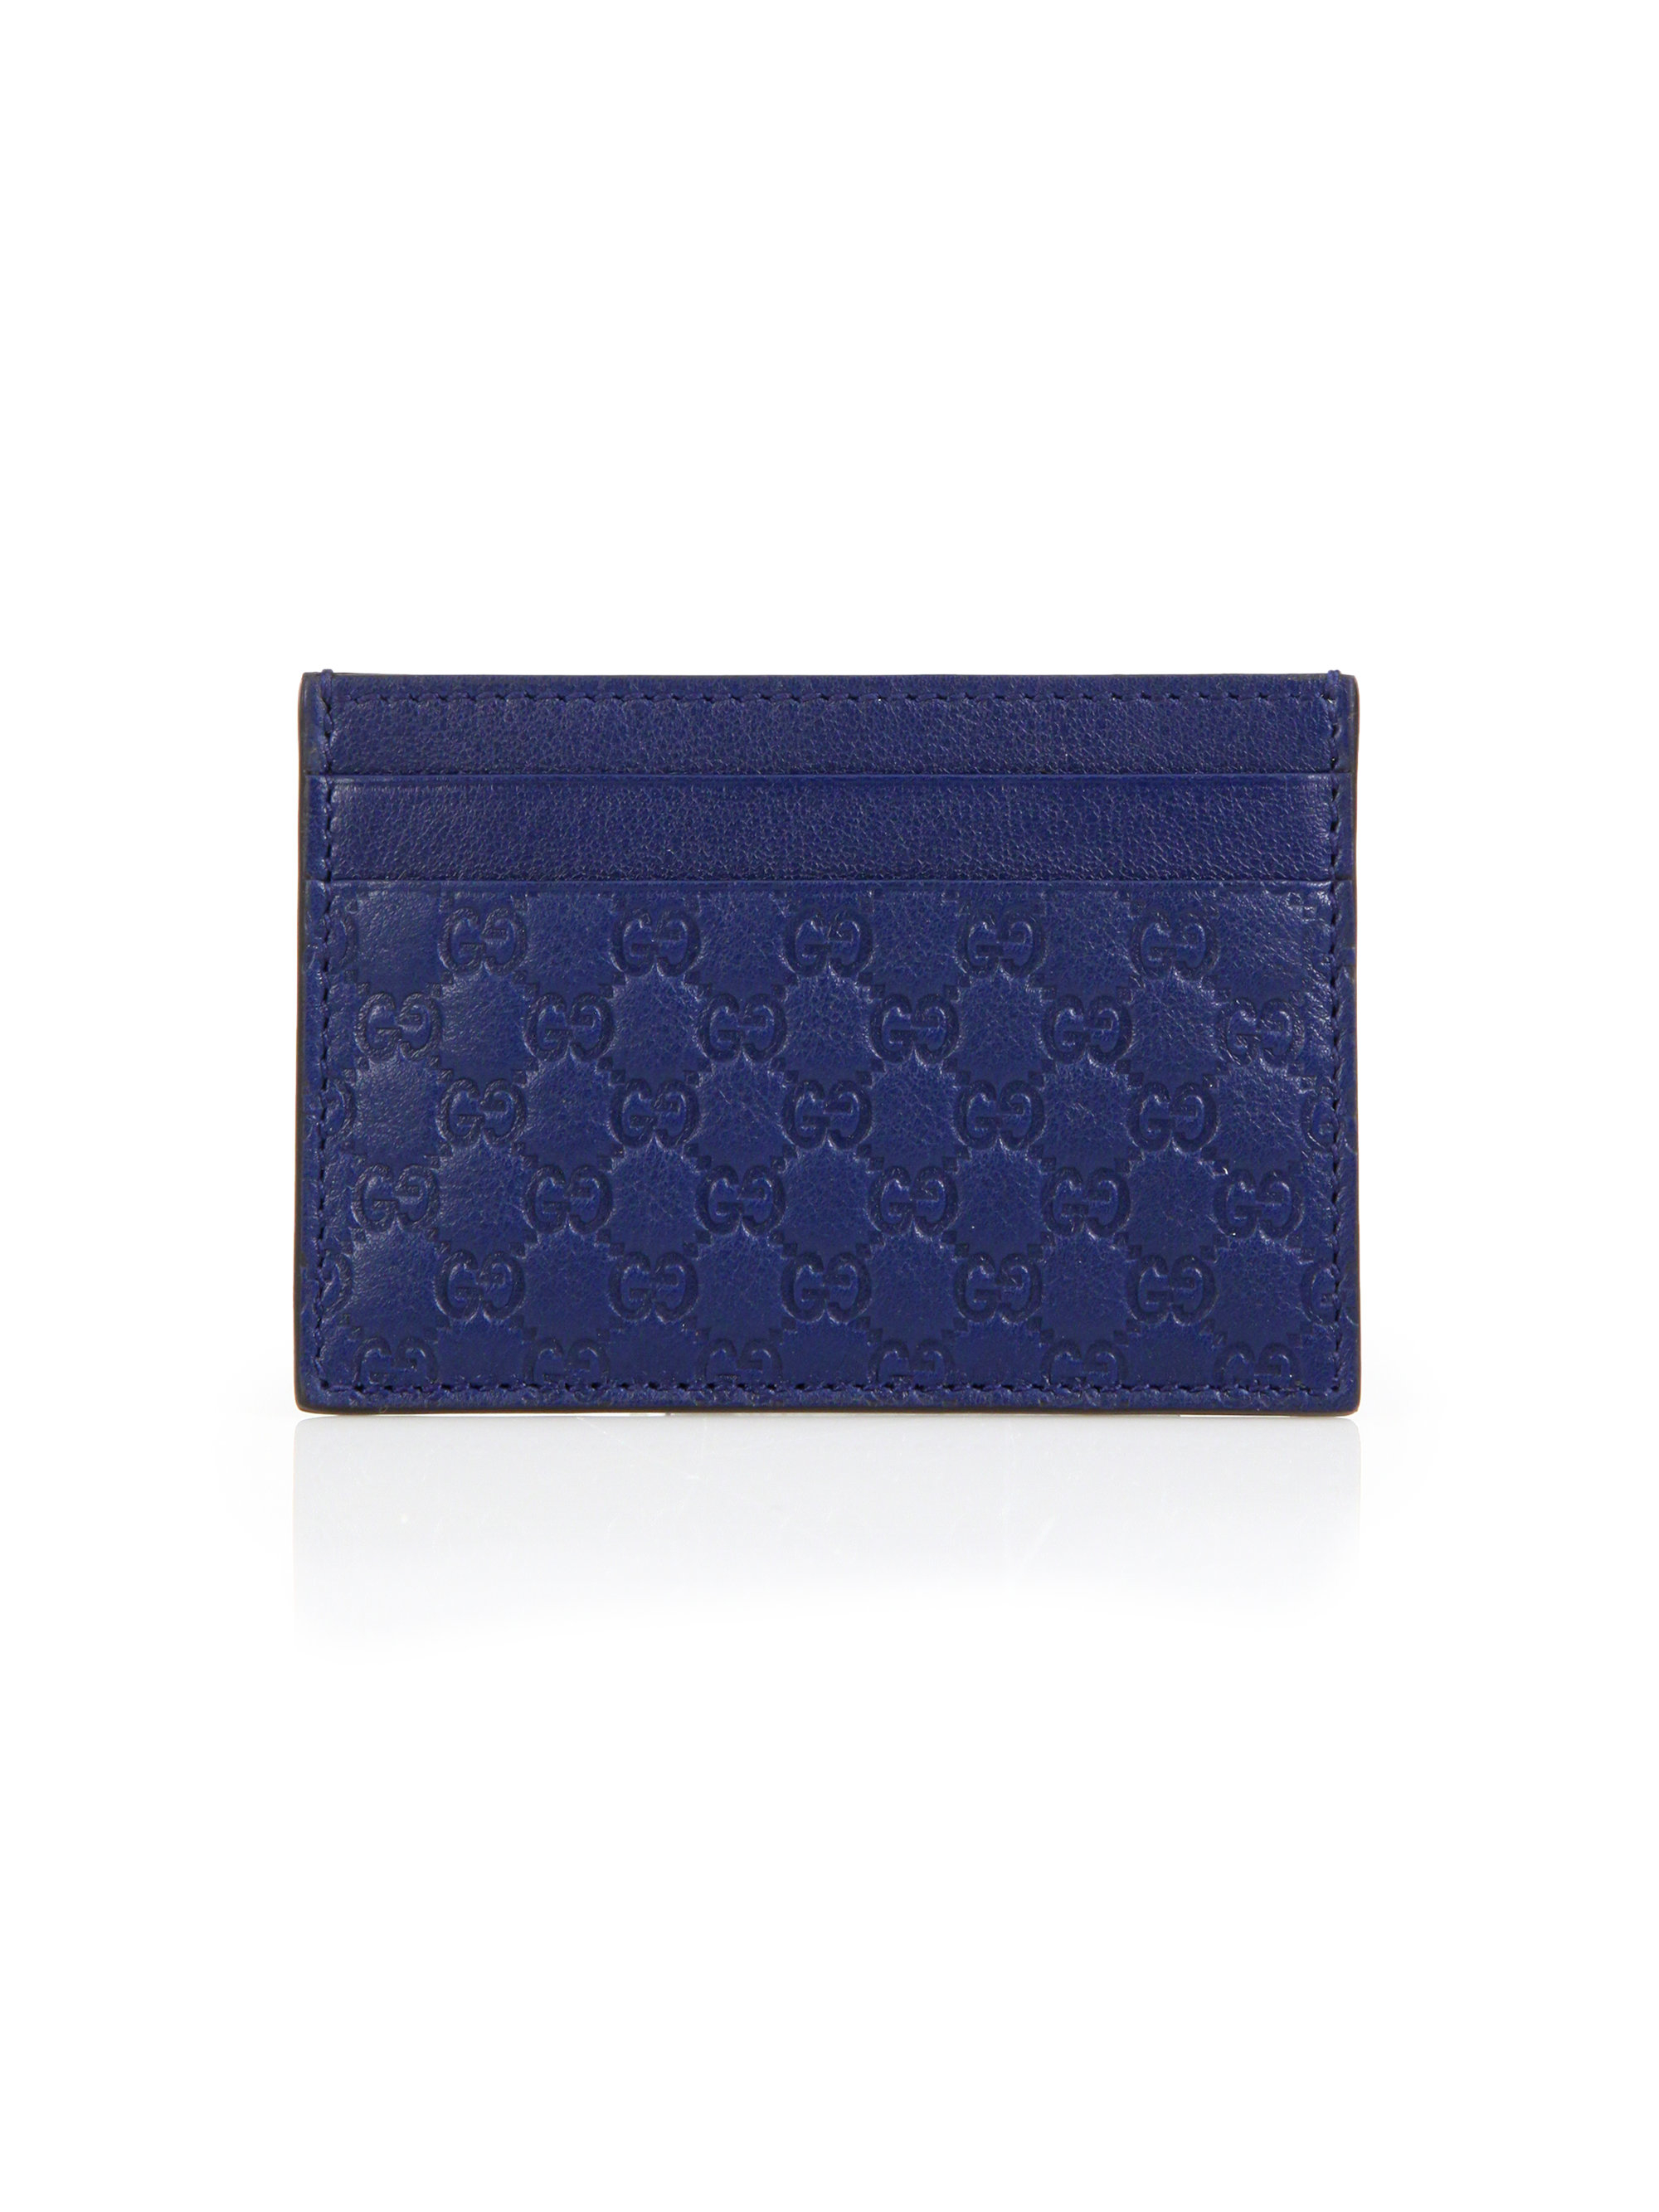 a691ea5d77a7 Gucci Microssima Leather Money Clip in Blue for Men - Lyst